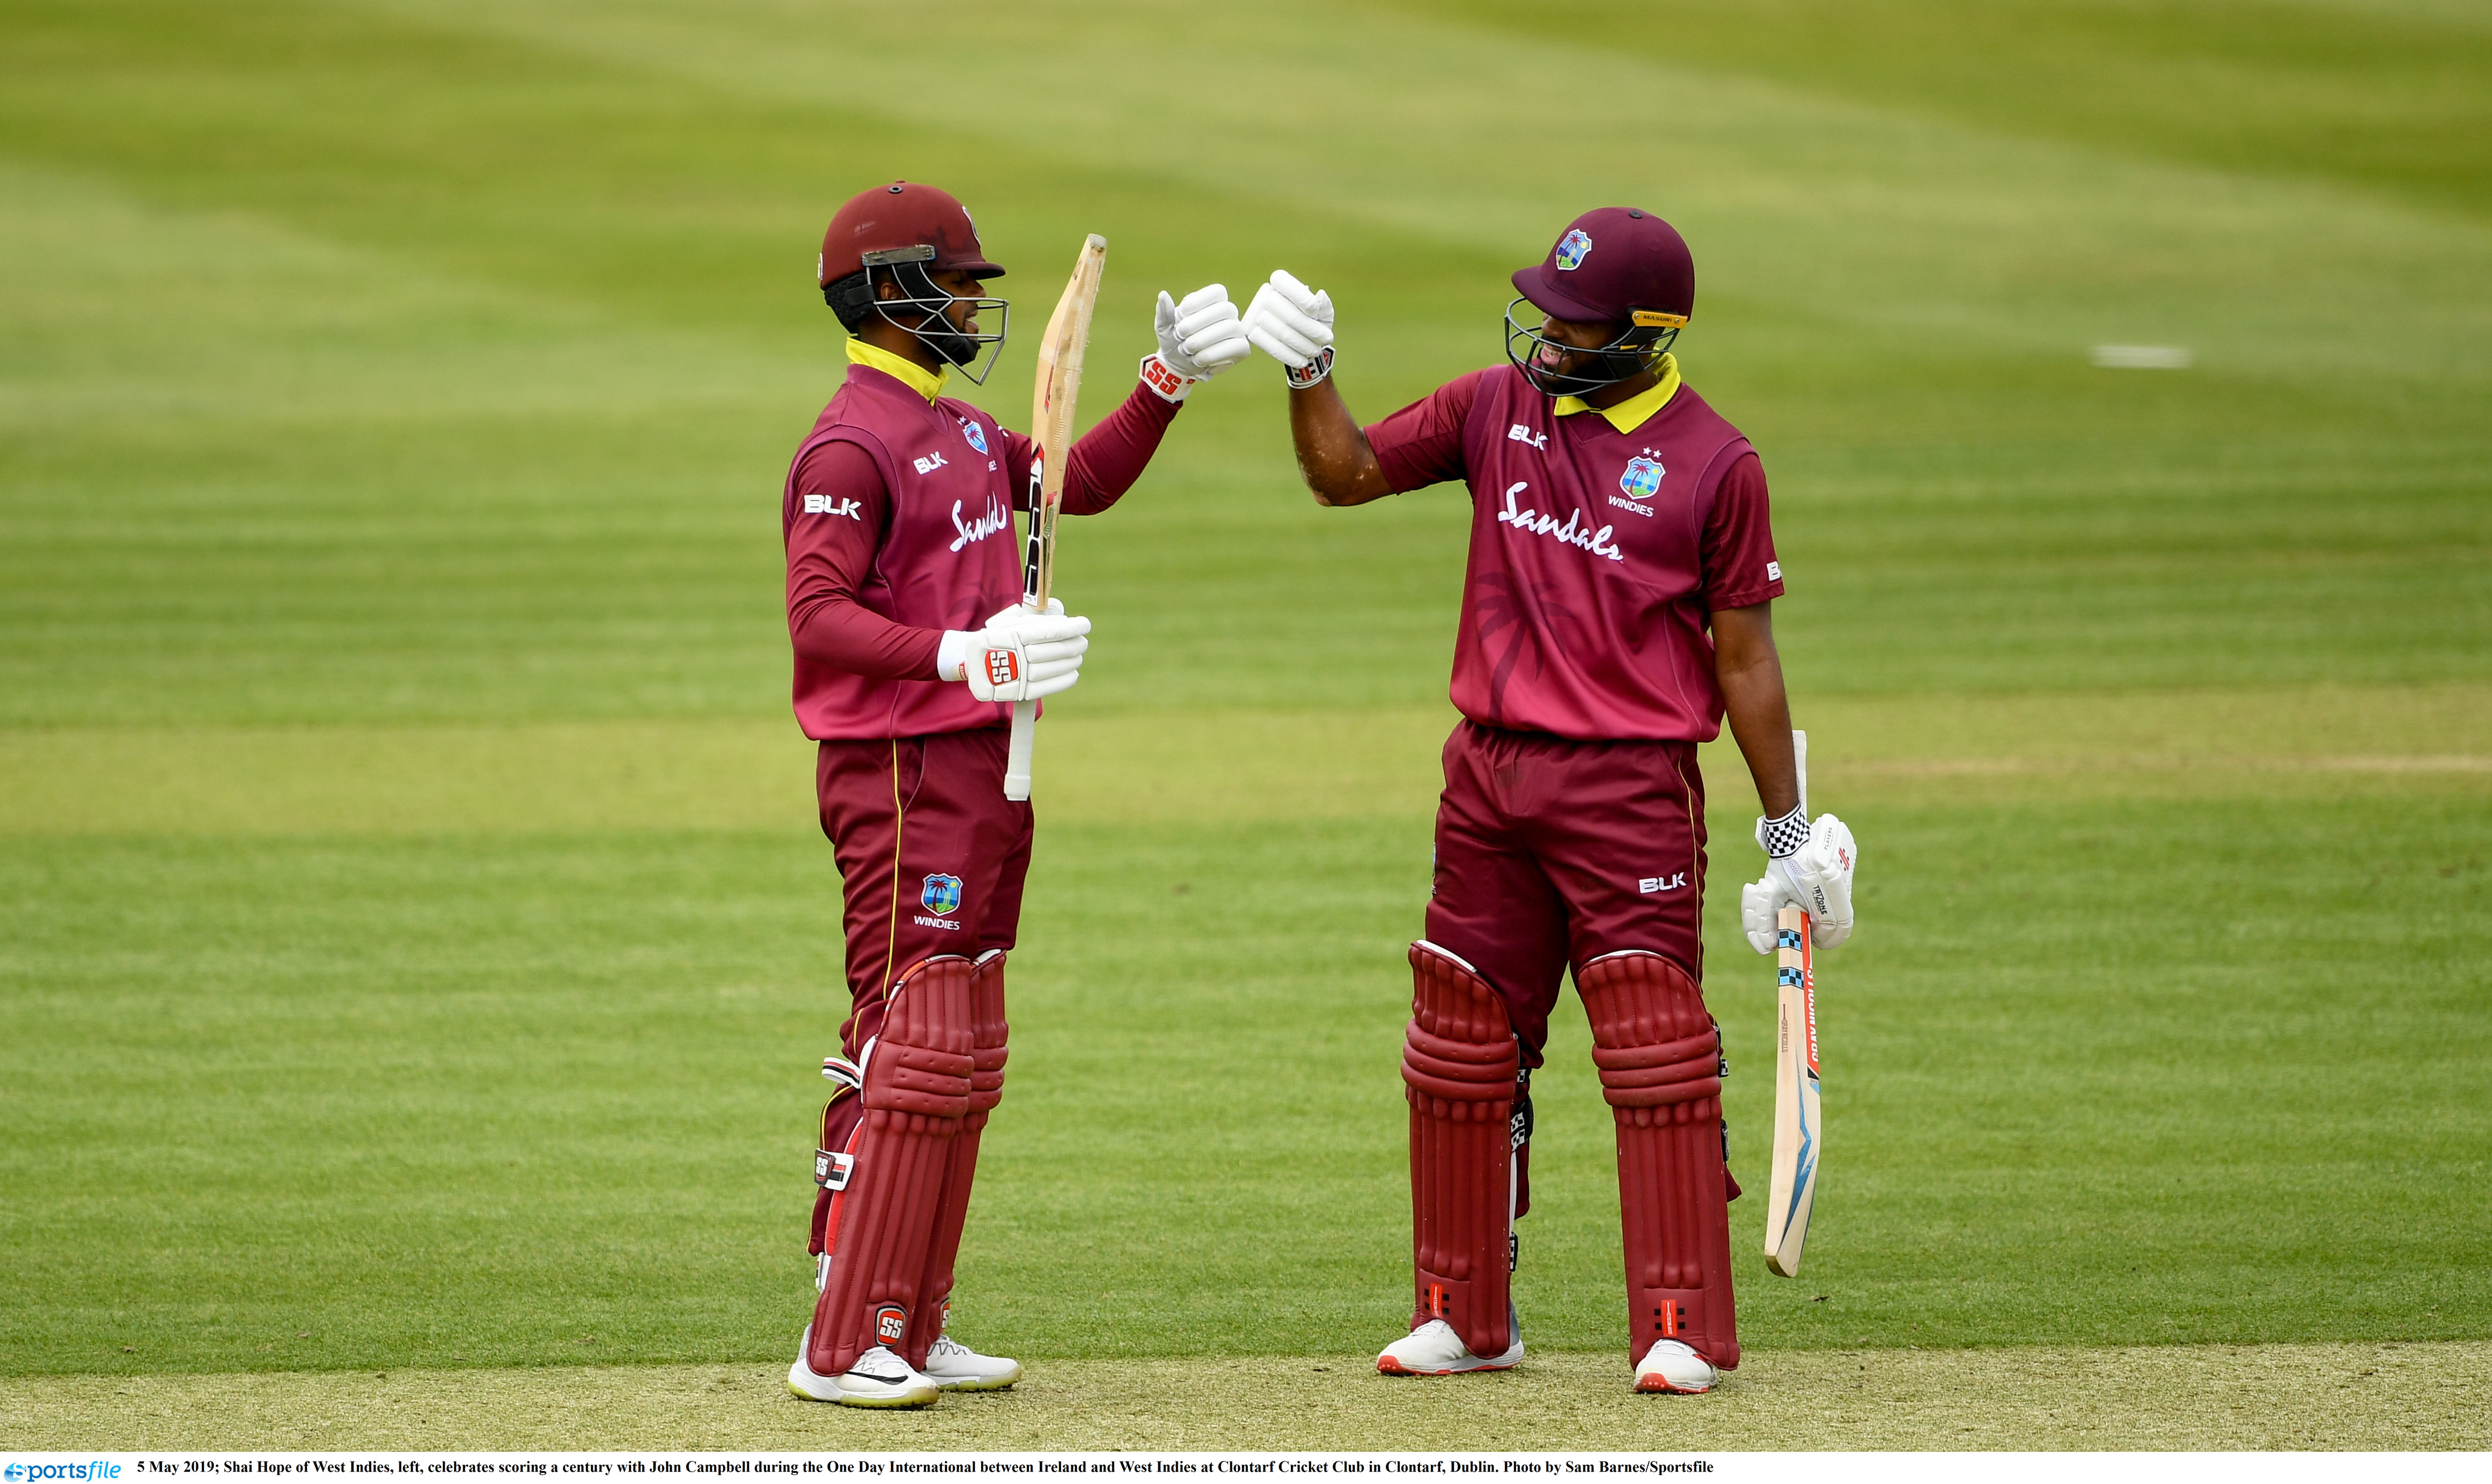 The records broken by Shai Hope and John Campbell